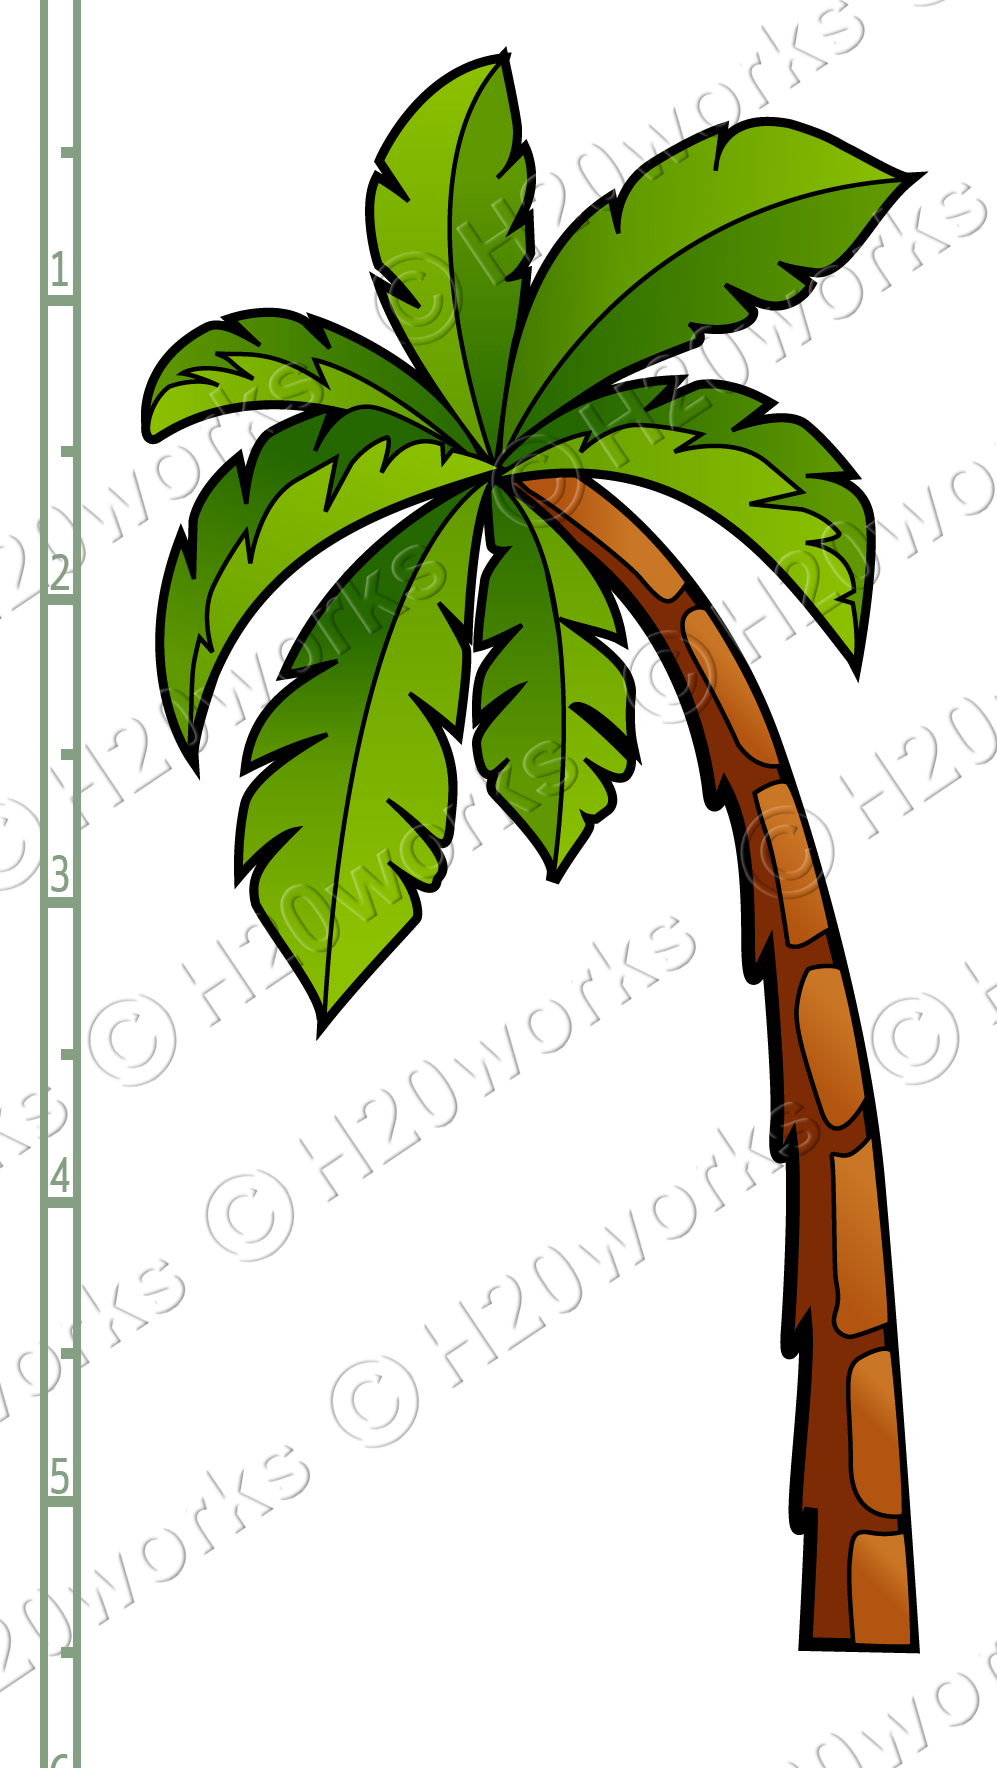 Palm Tree clipart curved Clip Palm palm%20tree%20beach%20clipart Clipart Tree